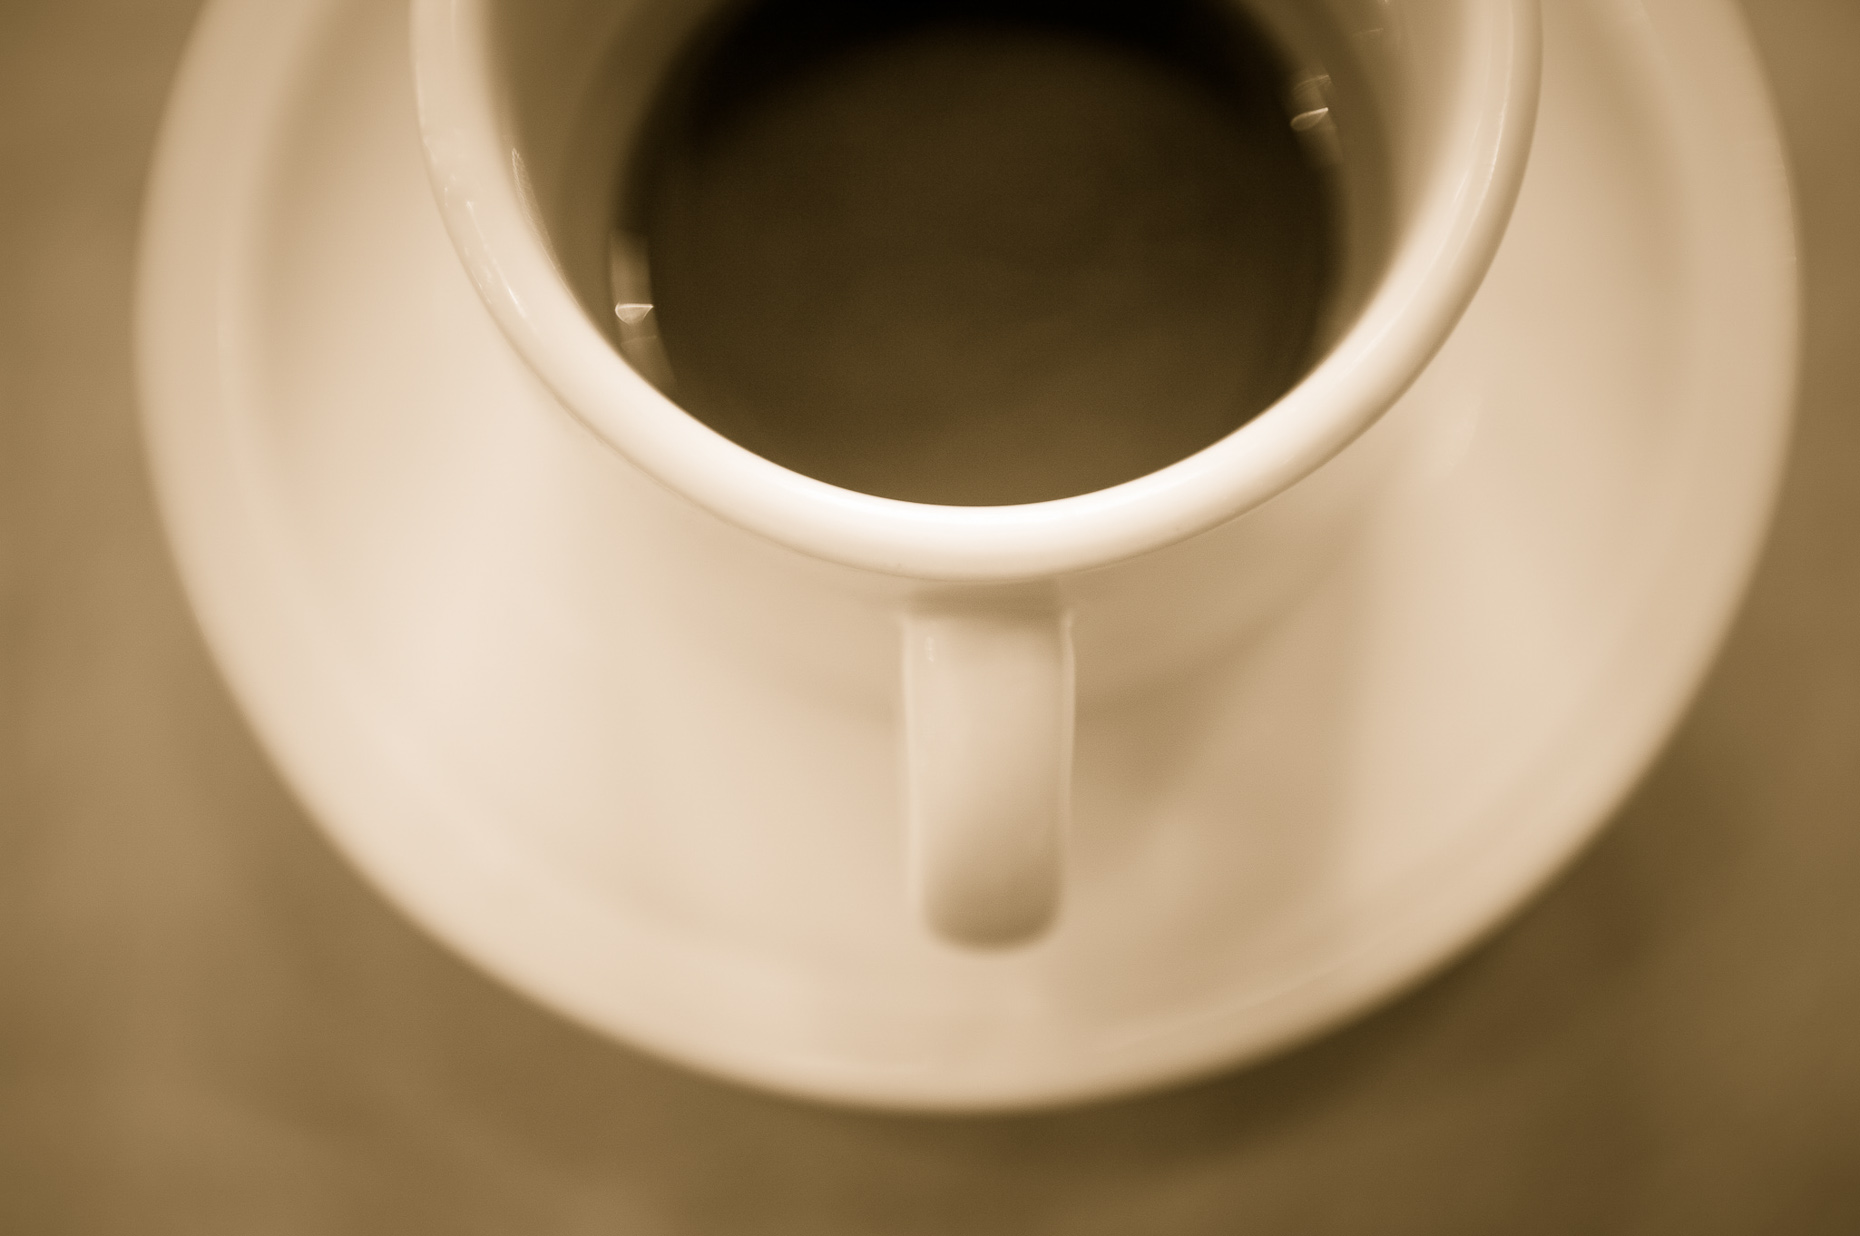 Sepia toned coffee cup and saucer shot from overhead.